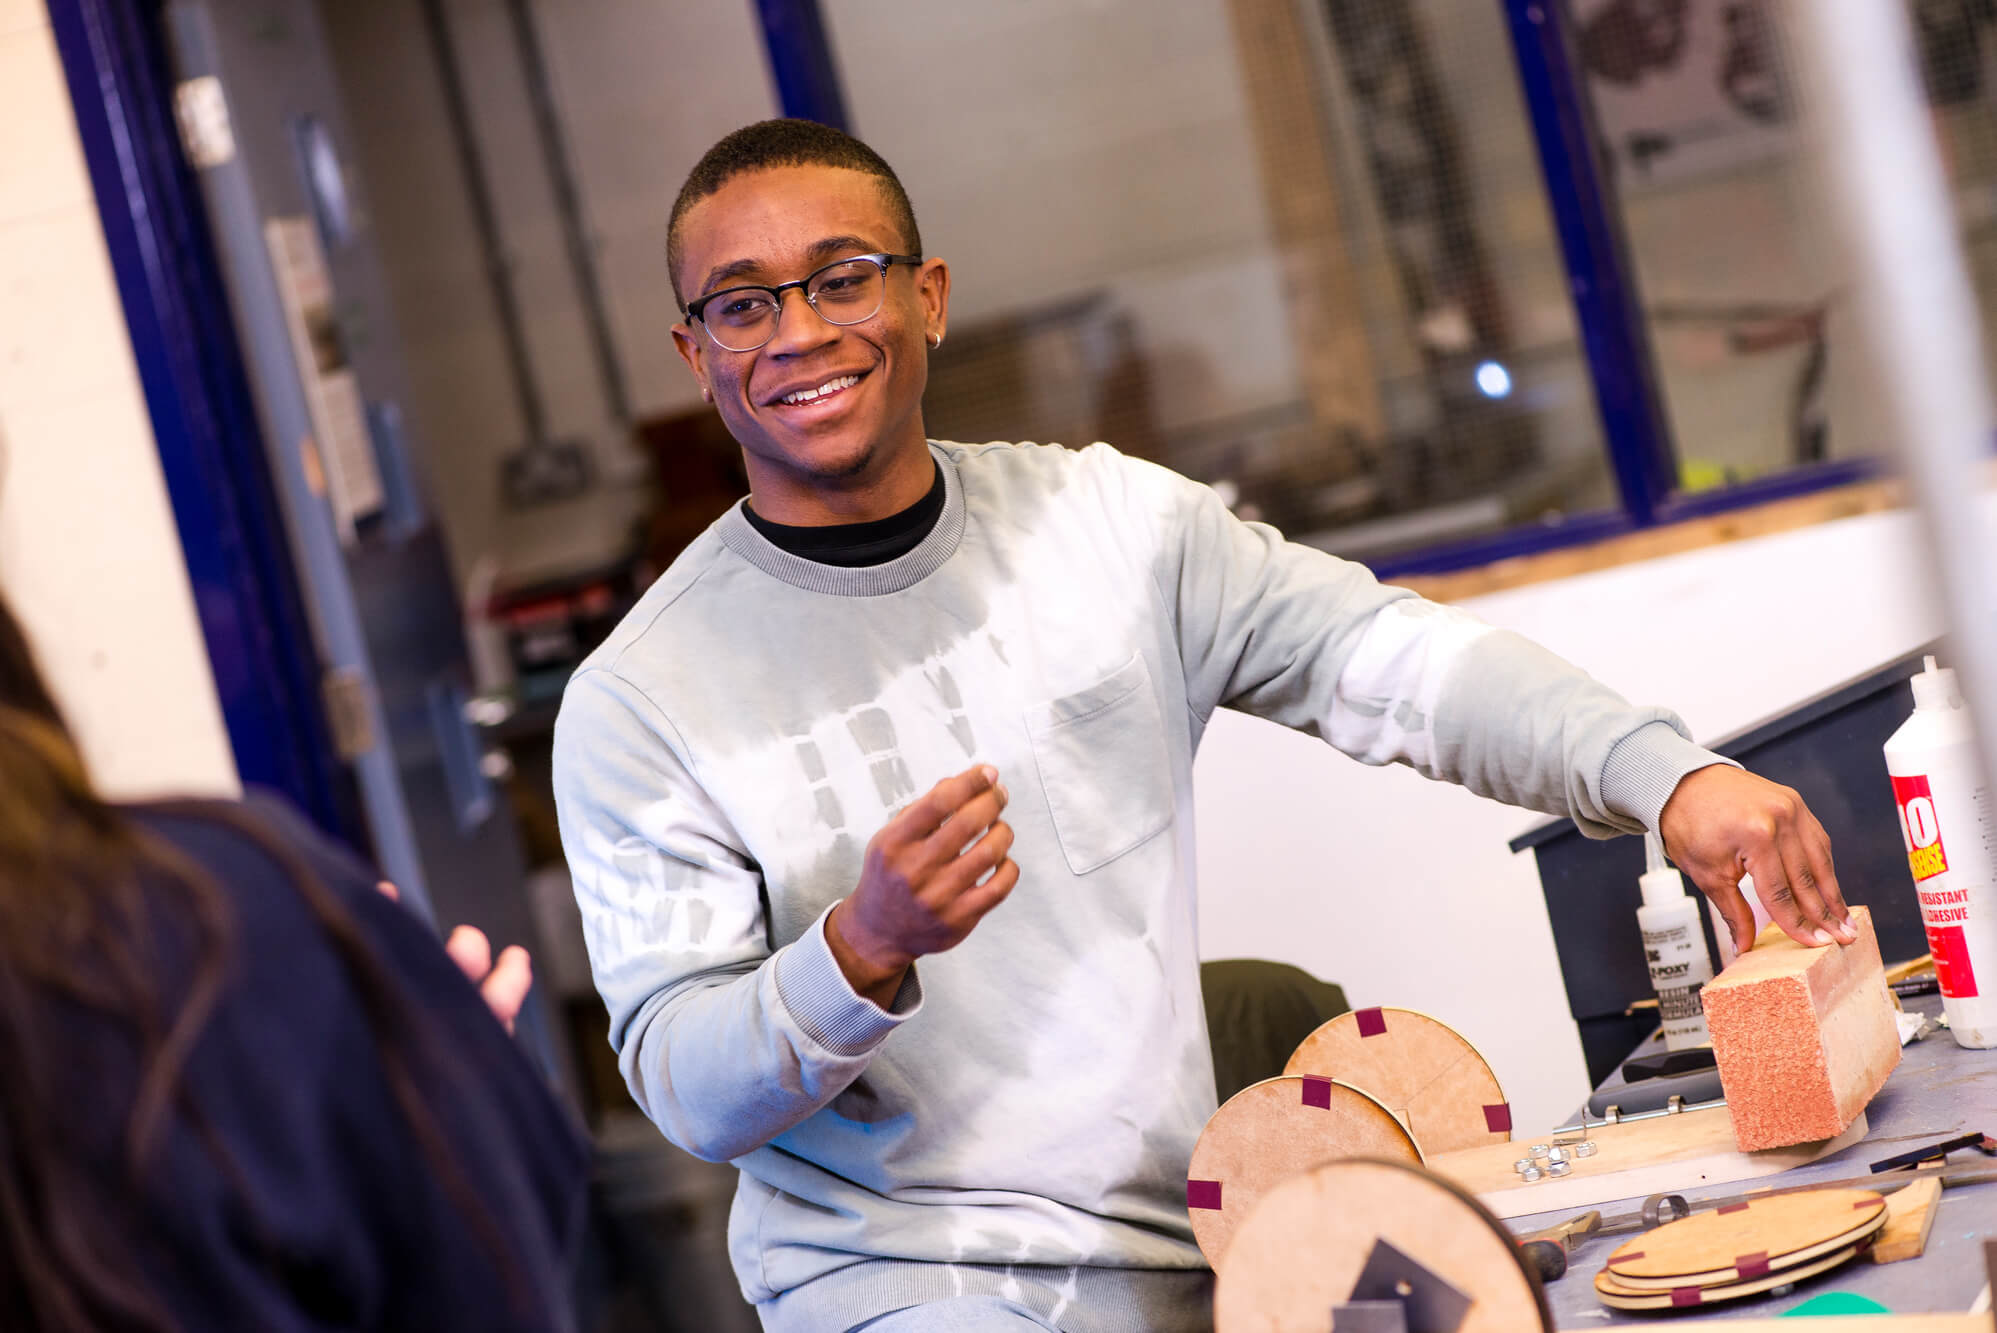 Product Design student in the workshops at Markeaton Street